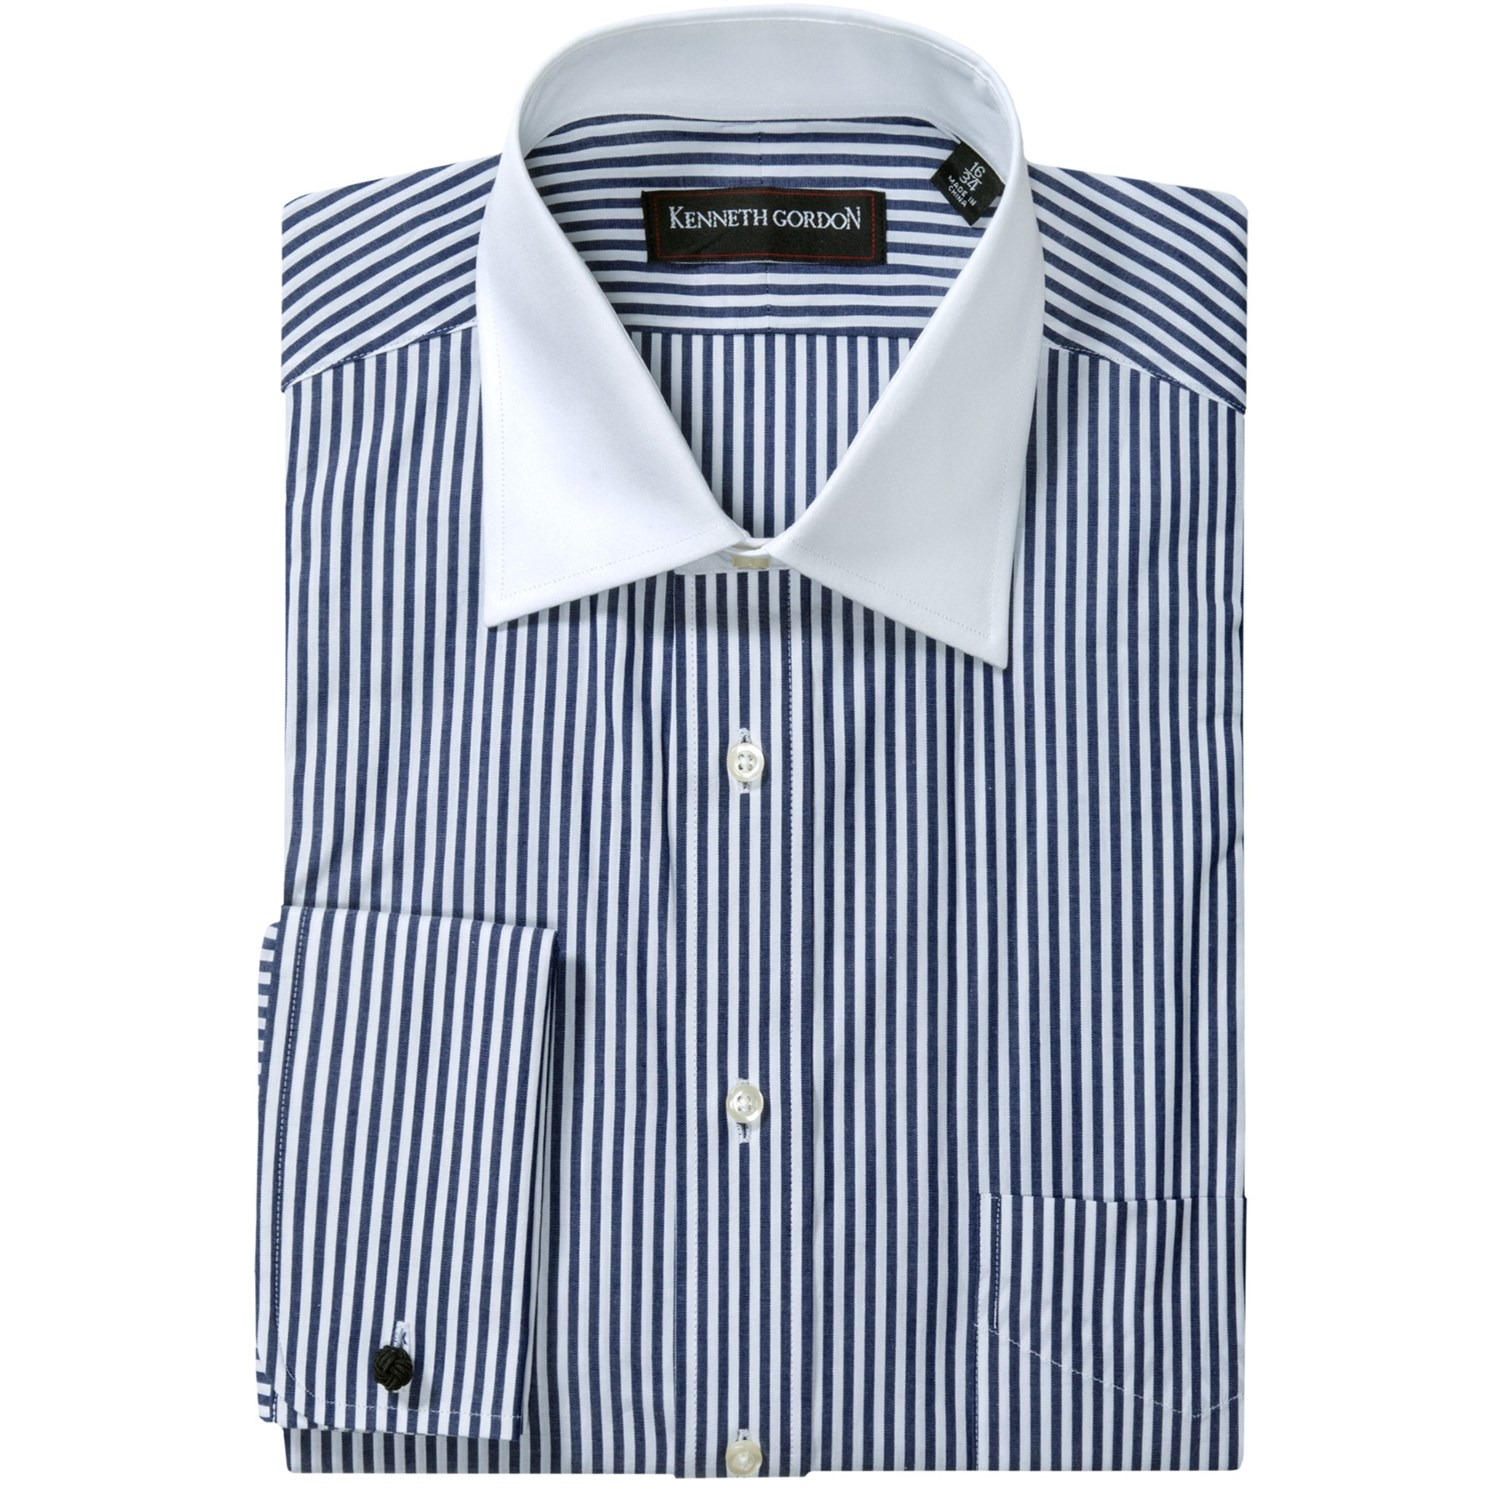 kenneth gordon french cuff dress shirt contrast buttons